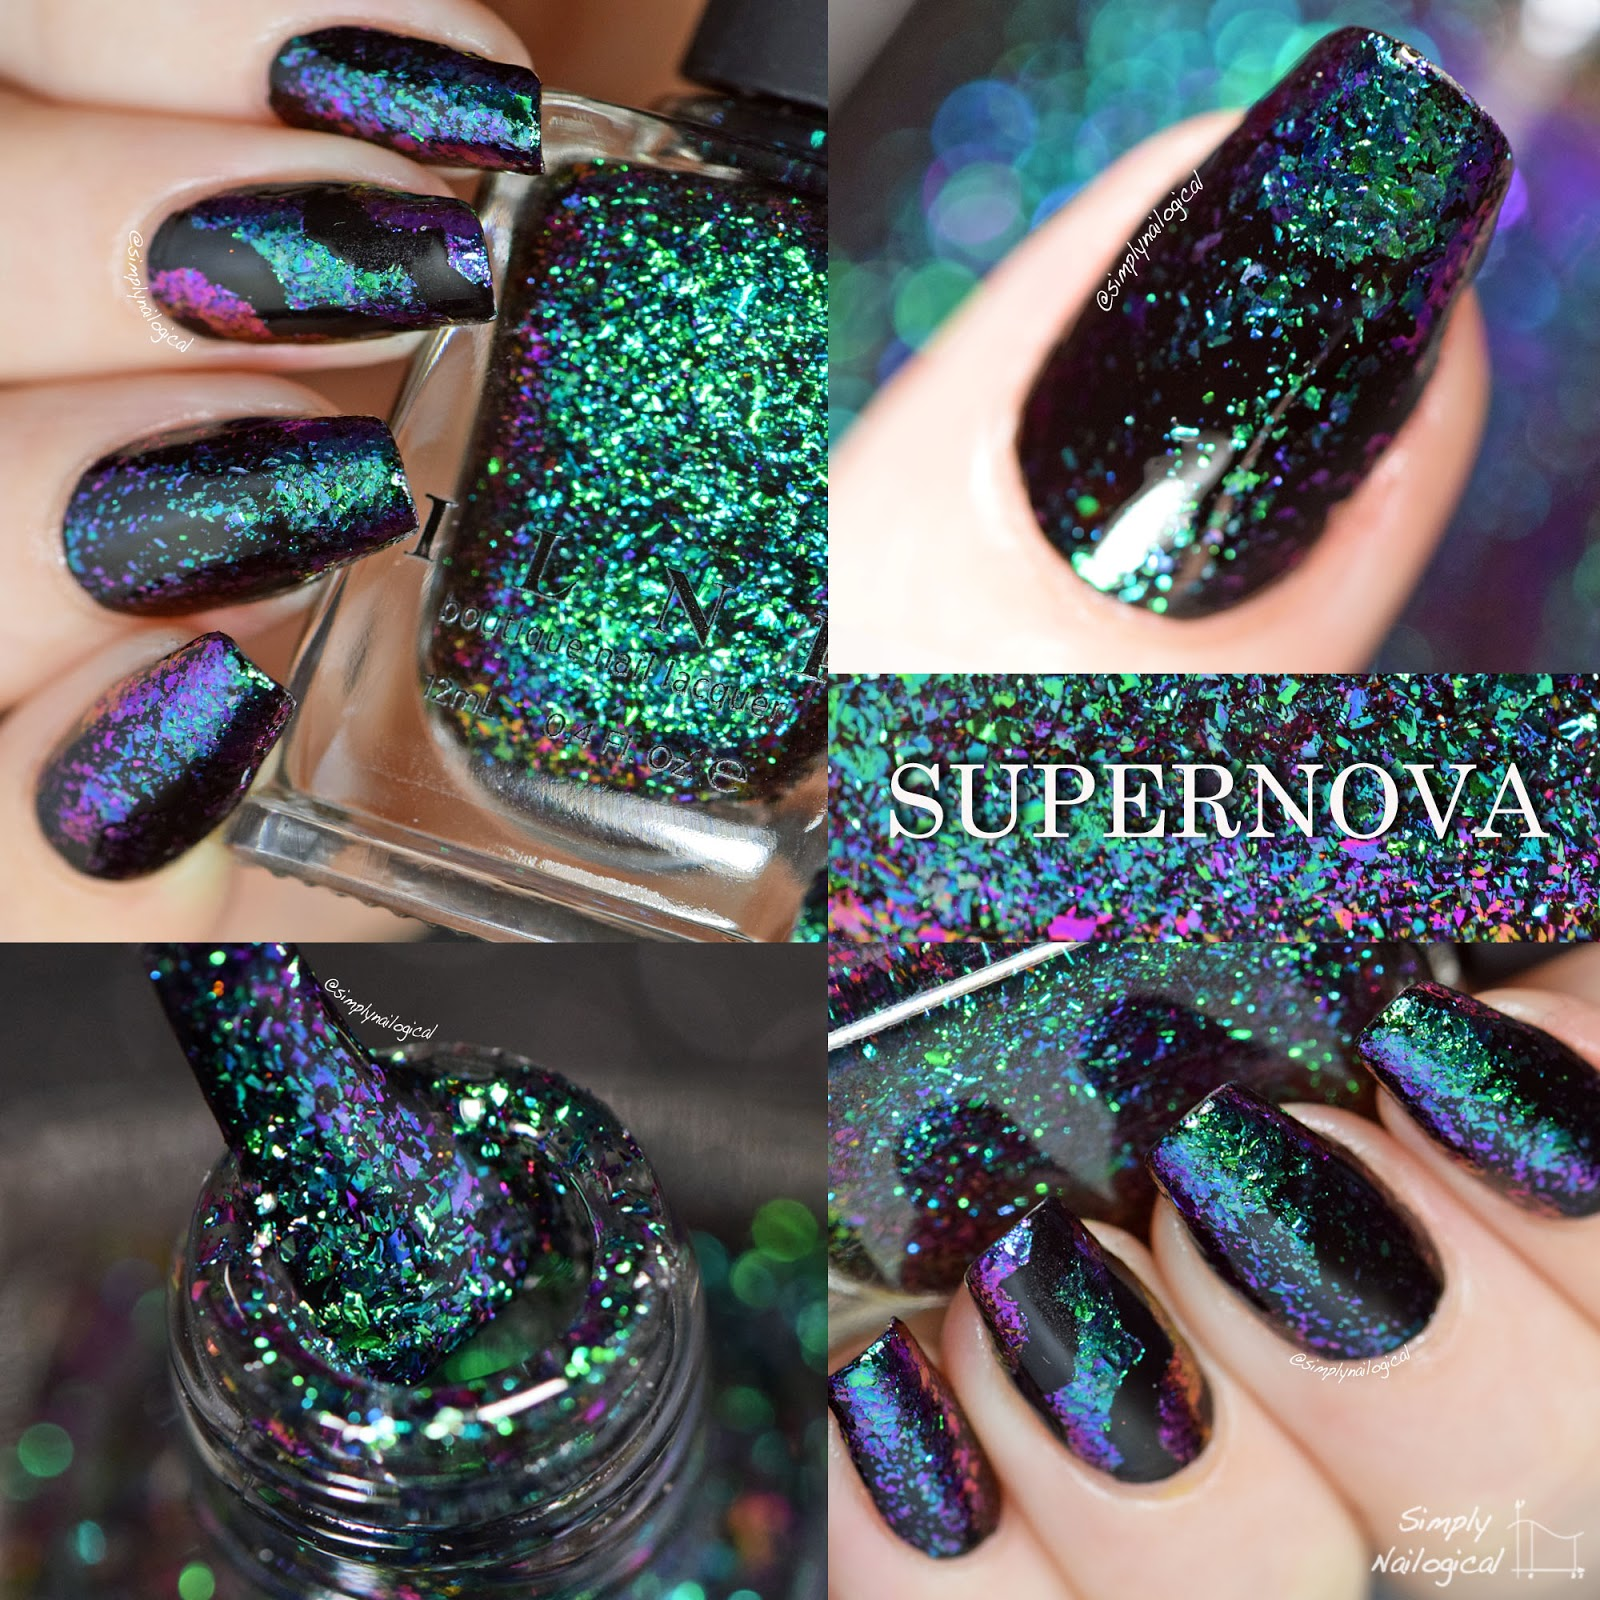 ILNP ultra-chrome Supernova